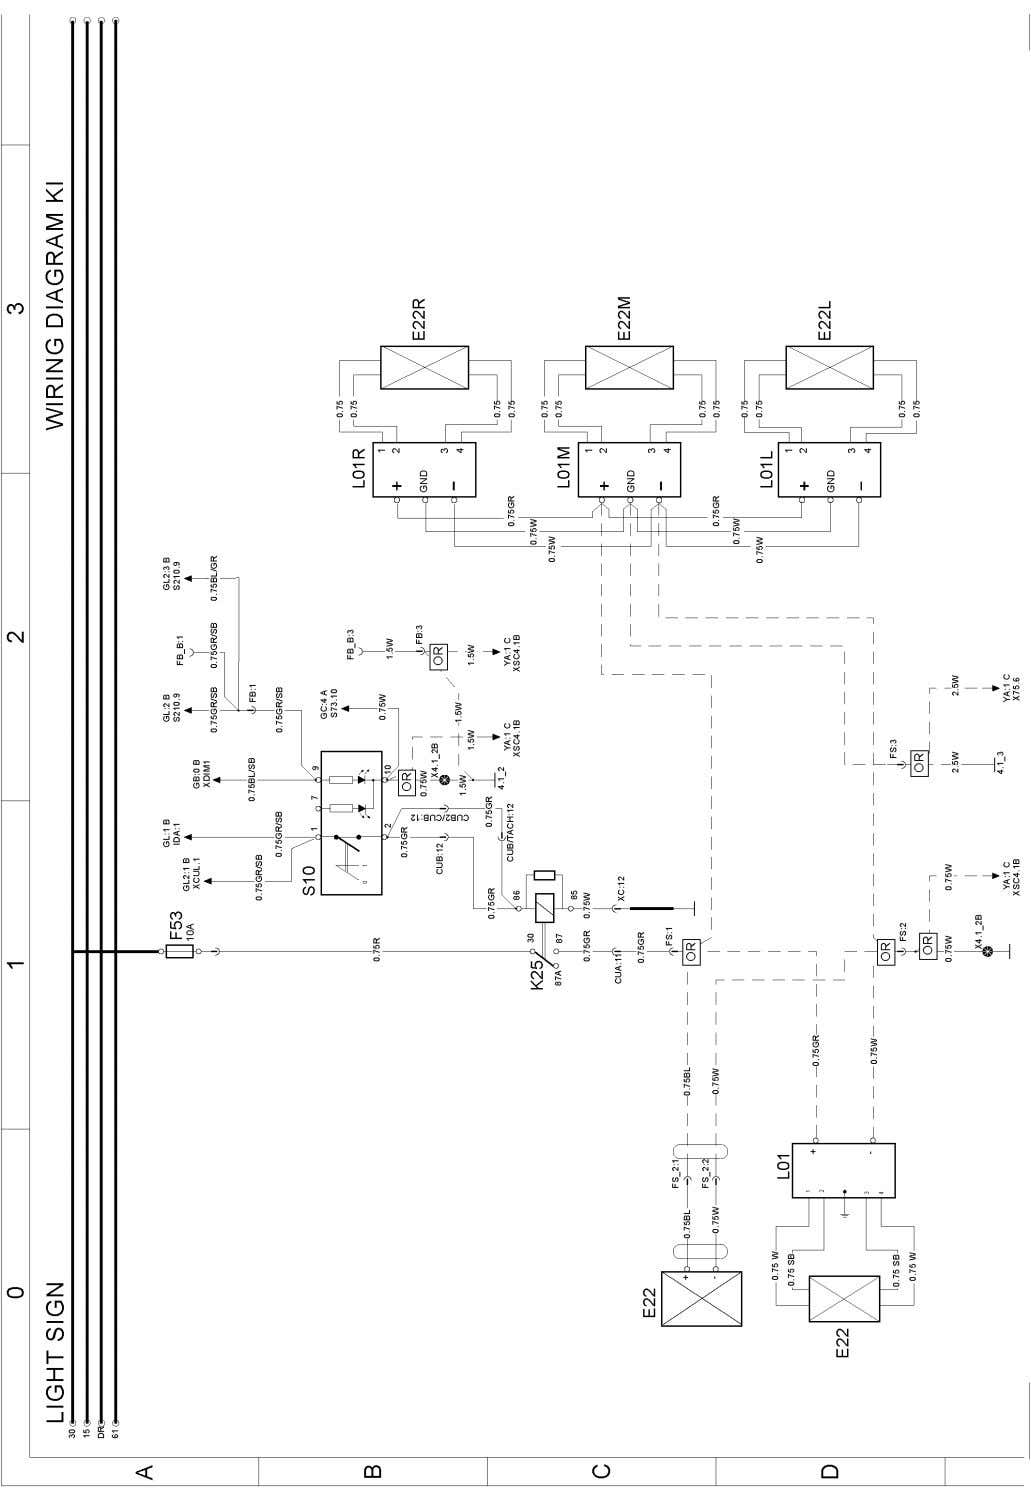 T3059903 Wiring diagram Page 105 (298)